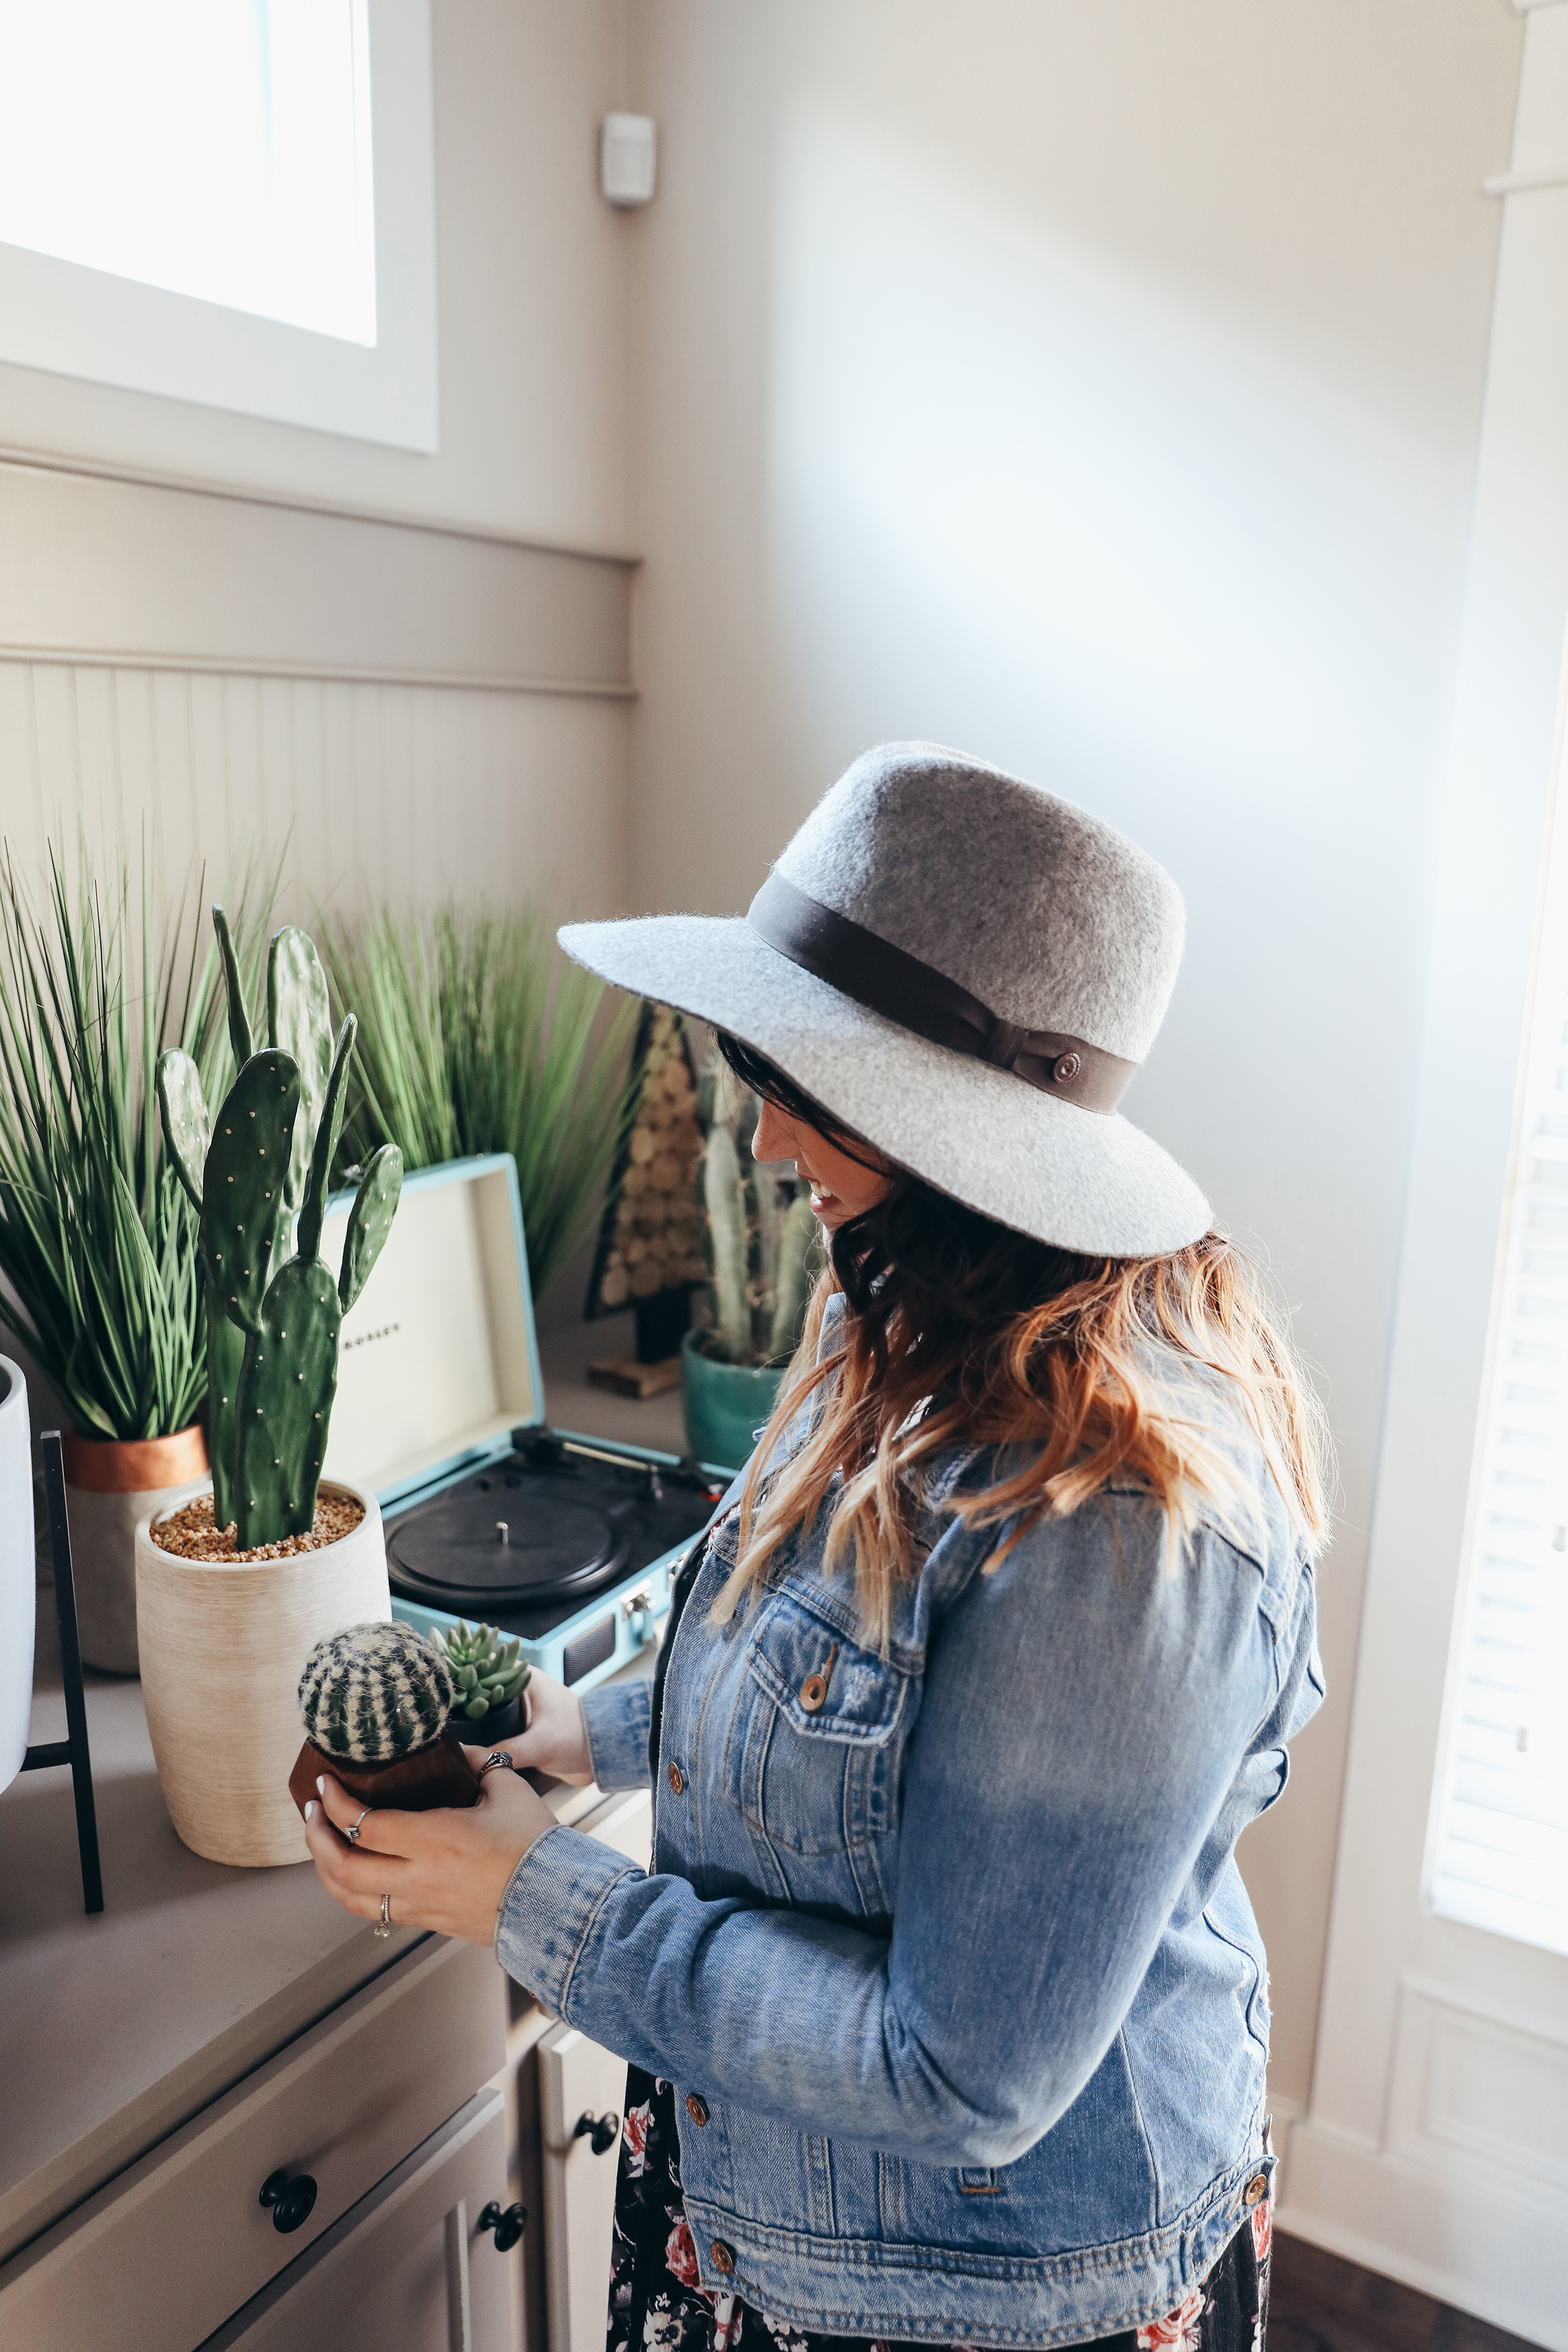 The Best Places to Buy Fake Plants via Chelcey Tate www.chelceytate.comThe Best Places to Buy Fake Plants via Chelcey Tate www.chelceytate.com